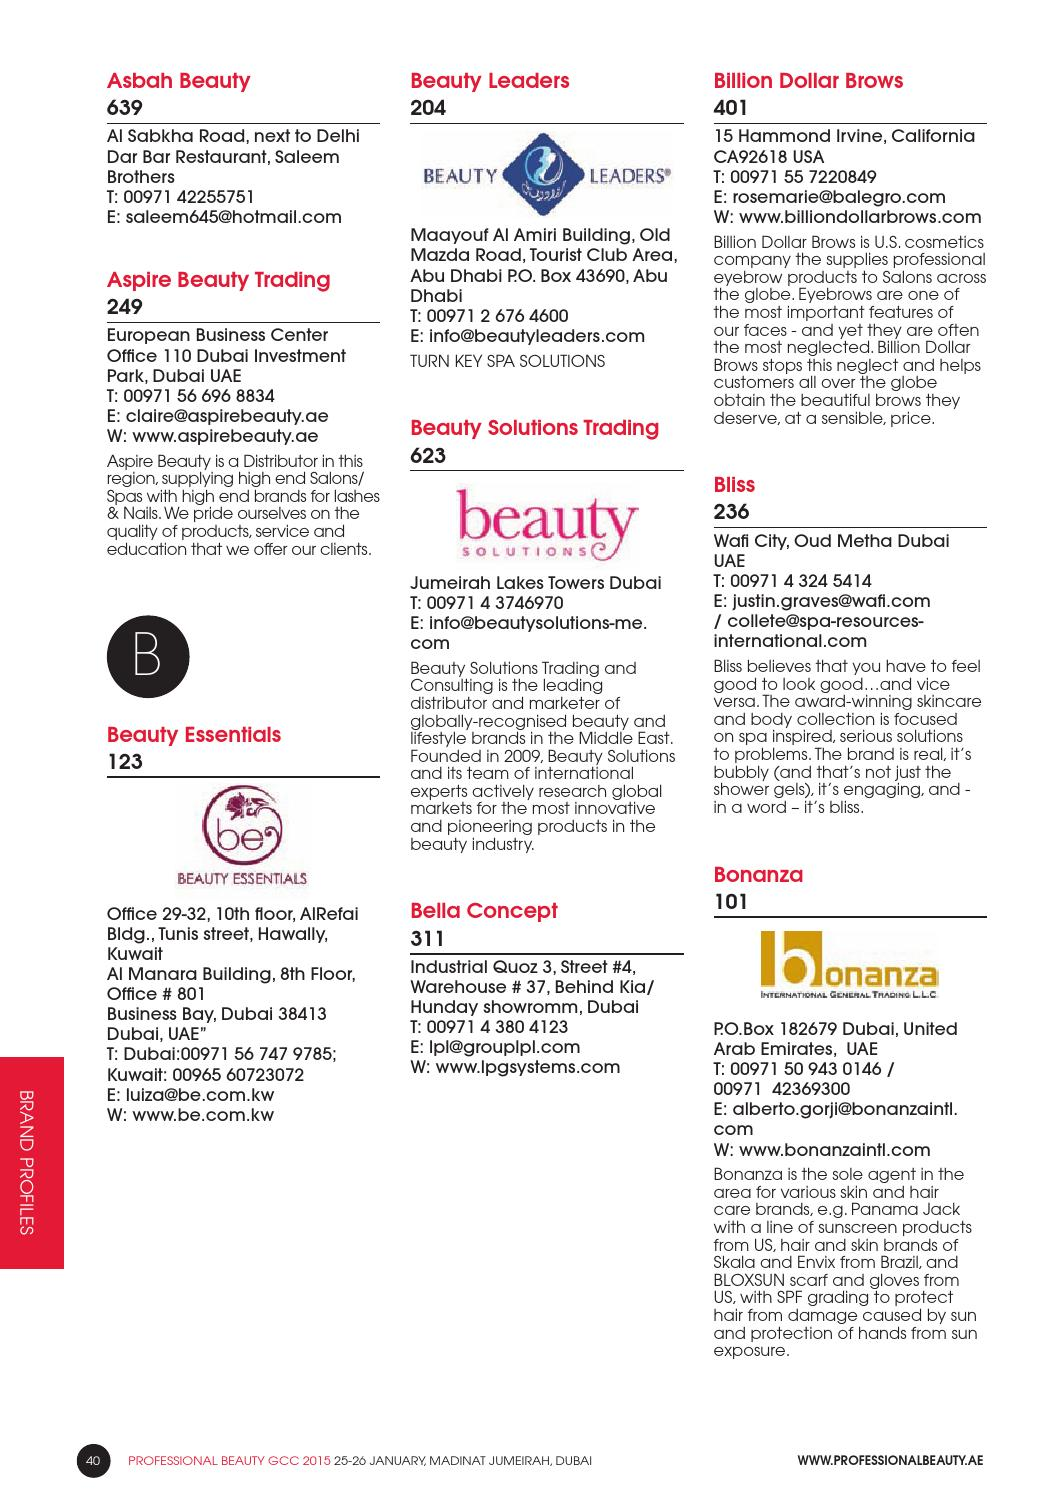 Professional Beauty GCC 2015 - Show Guide by Professional Beauty GCC